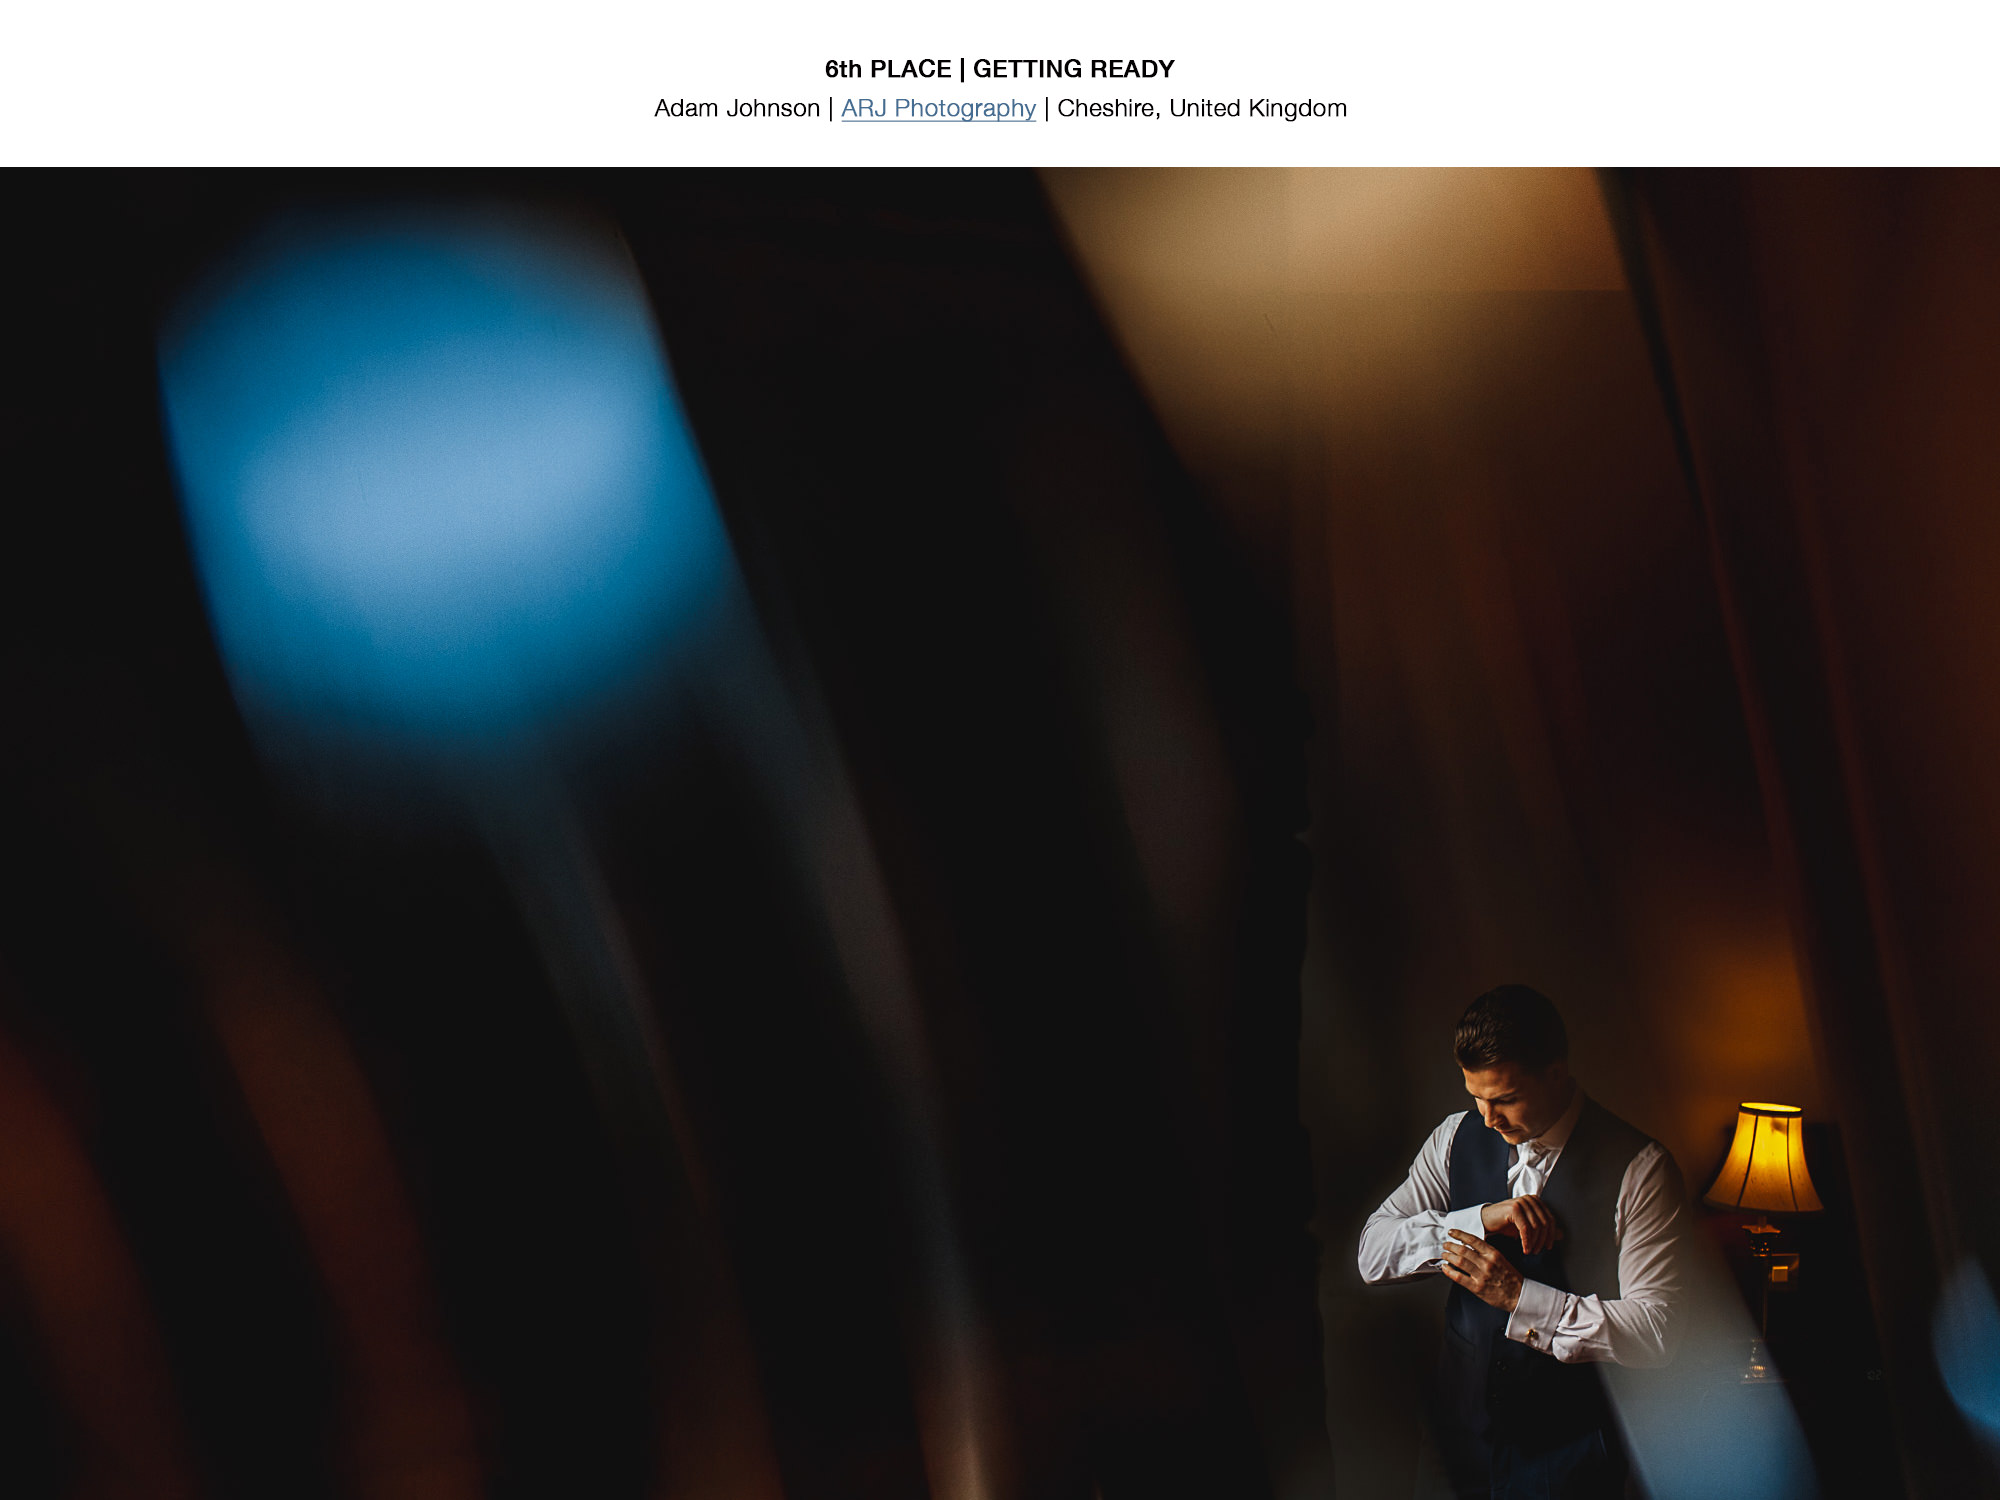 Groom Getting Ready - Award Winning Wedding Photography